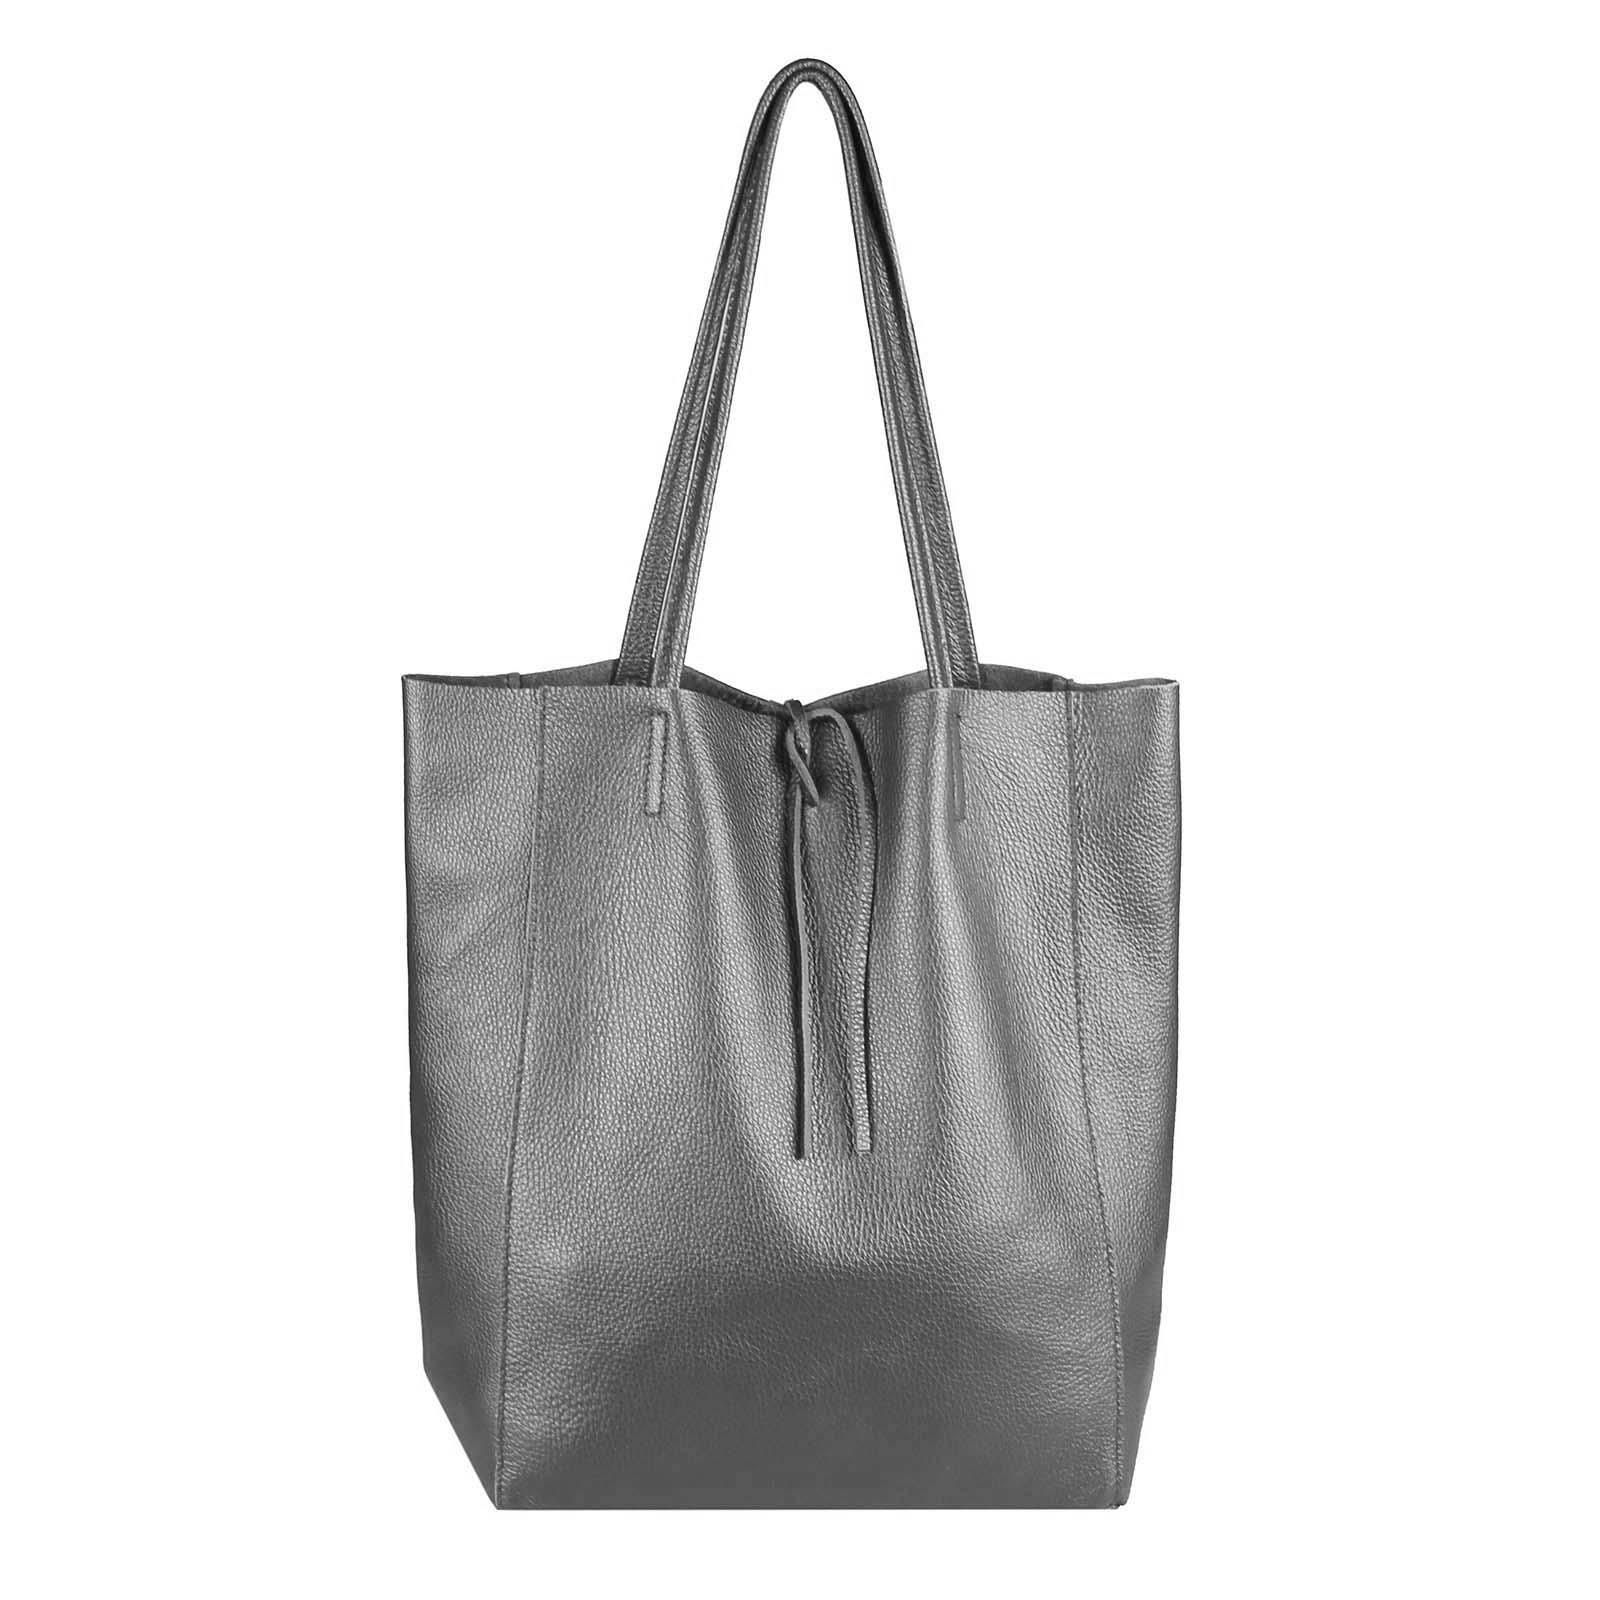 Damen Shopper Obc Made In Italy Damen Leder Tasche Din A4 Shopper Schultertasche